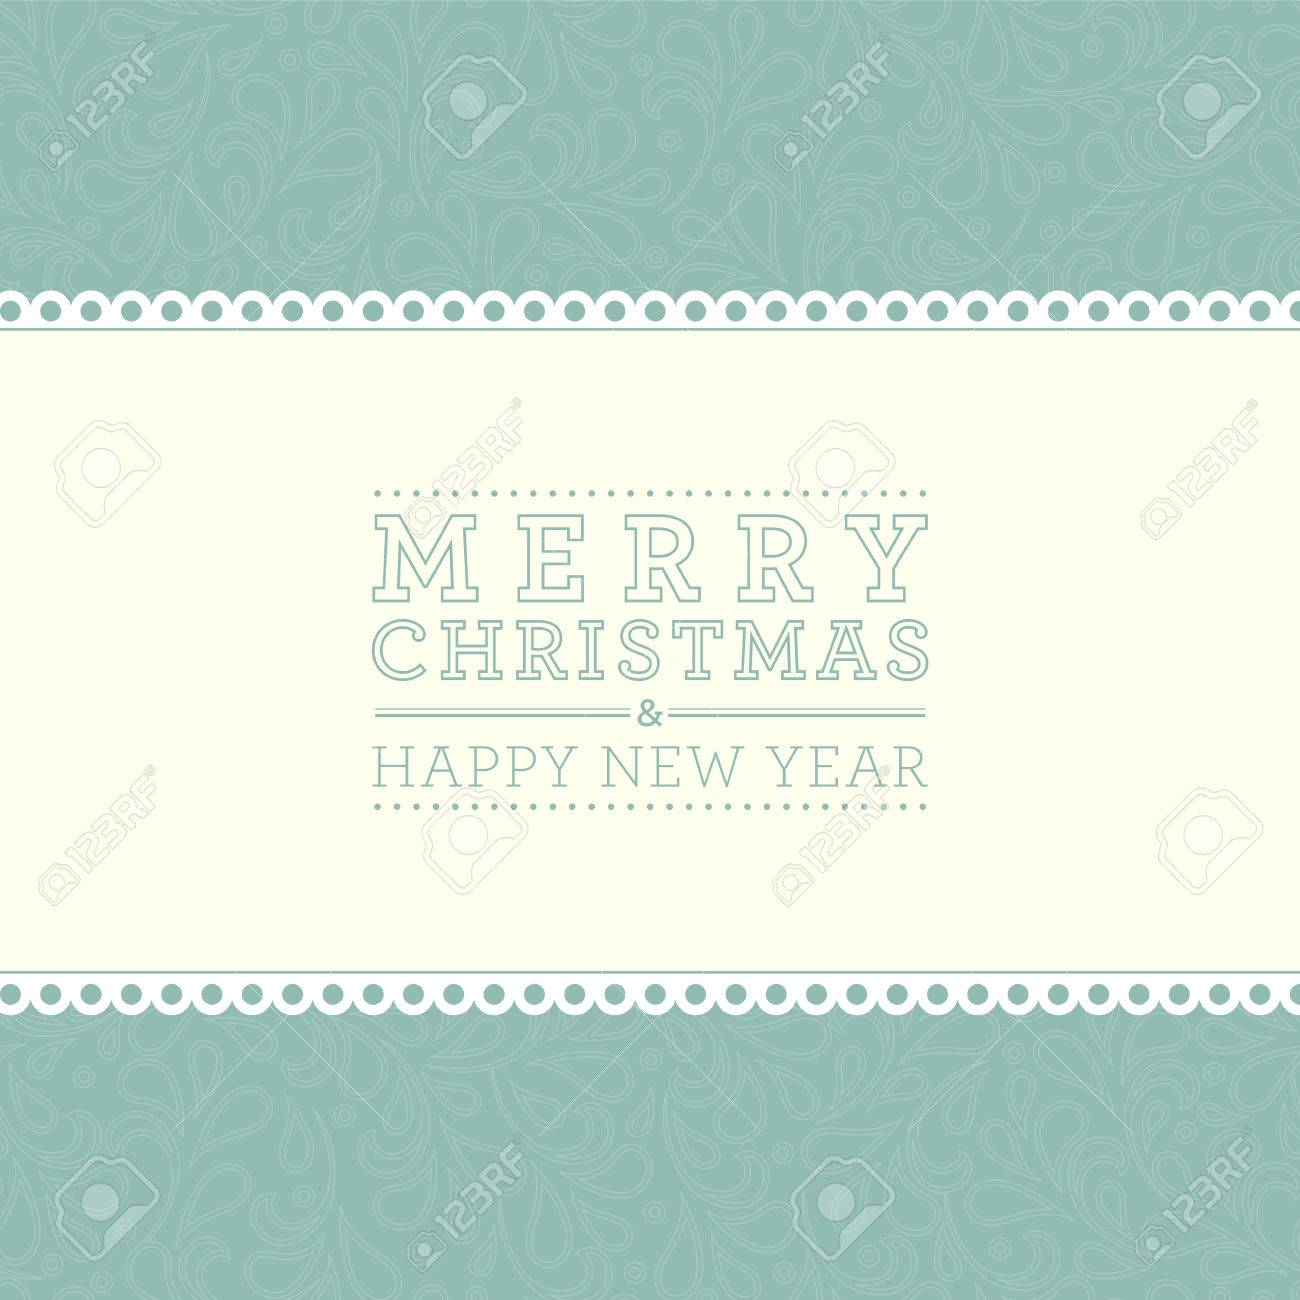 ornate damask background merry christmas and happy new year card design perfect as invitation